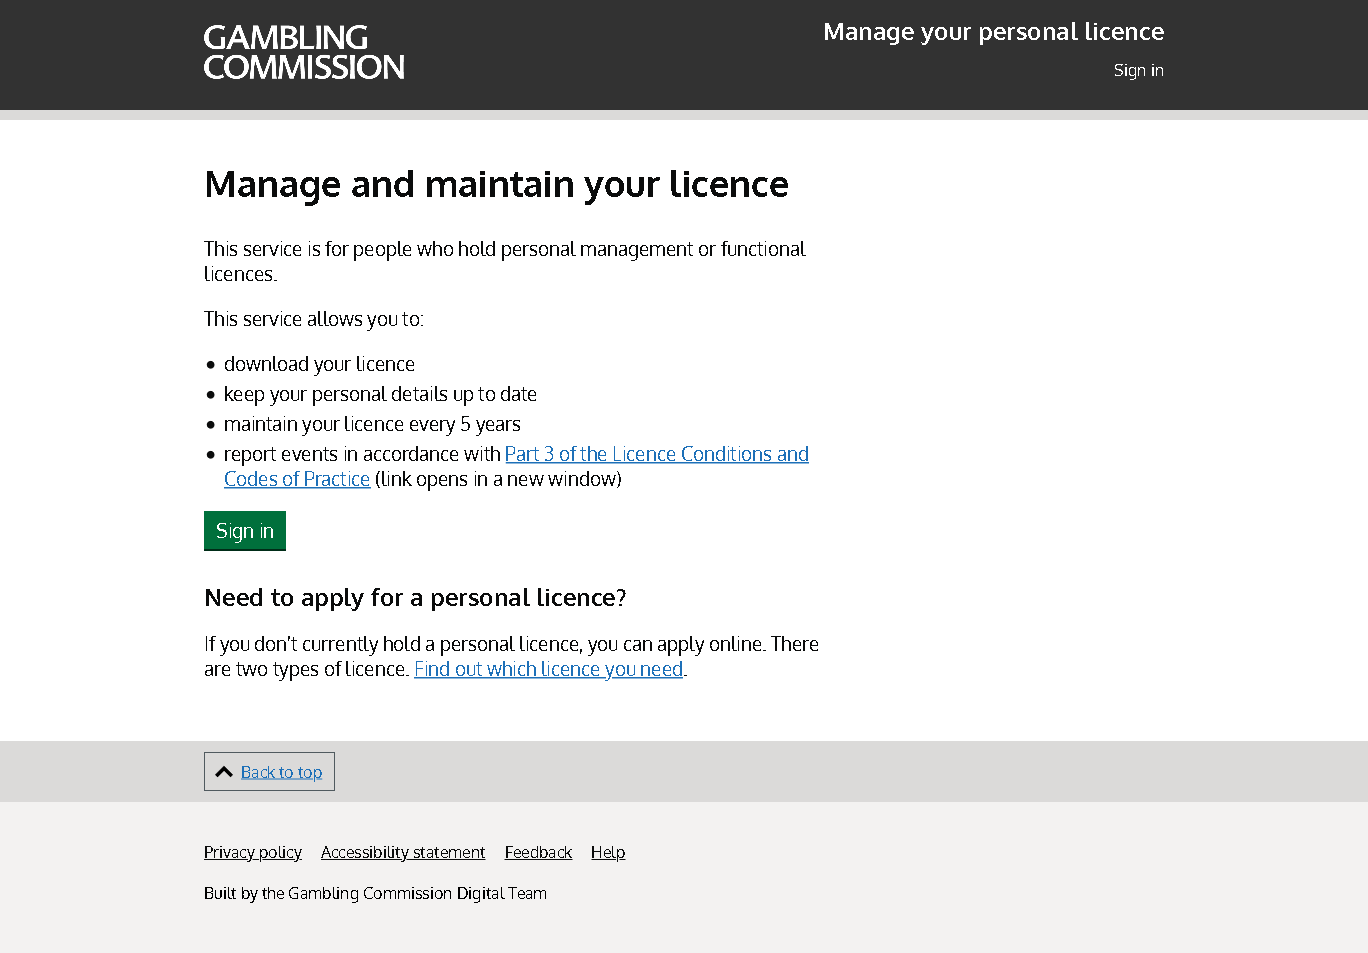 Screenshot of the Manage and Maintain your personal licence service